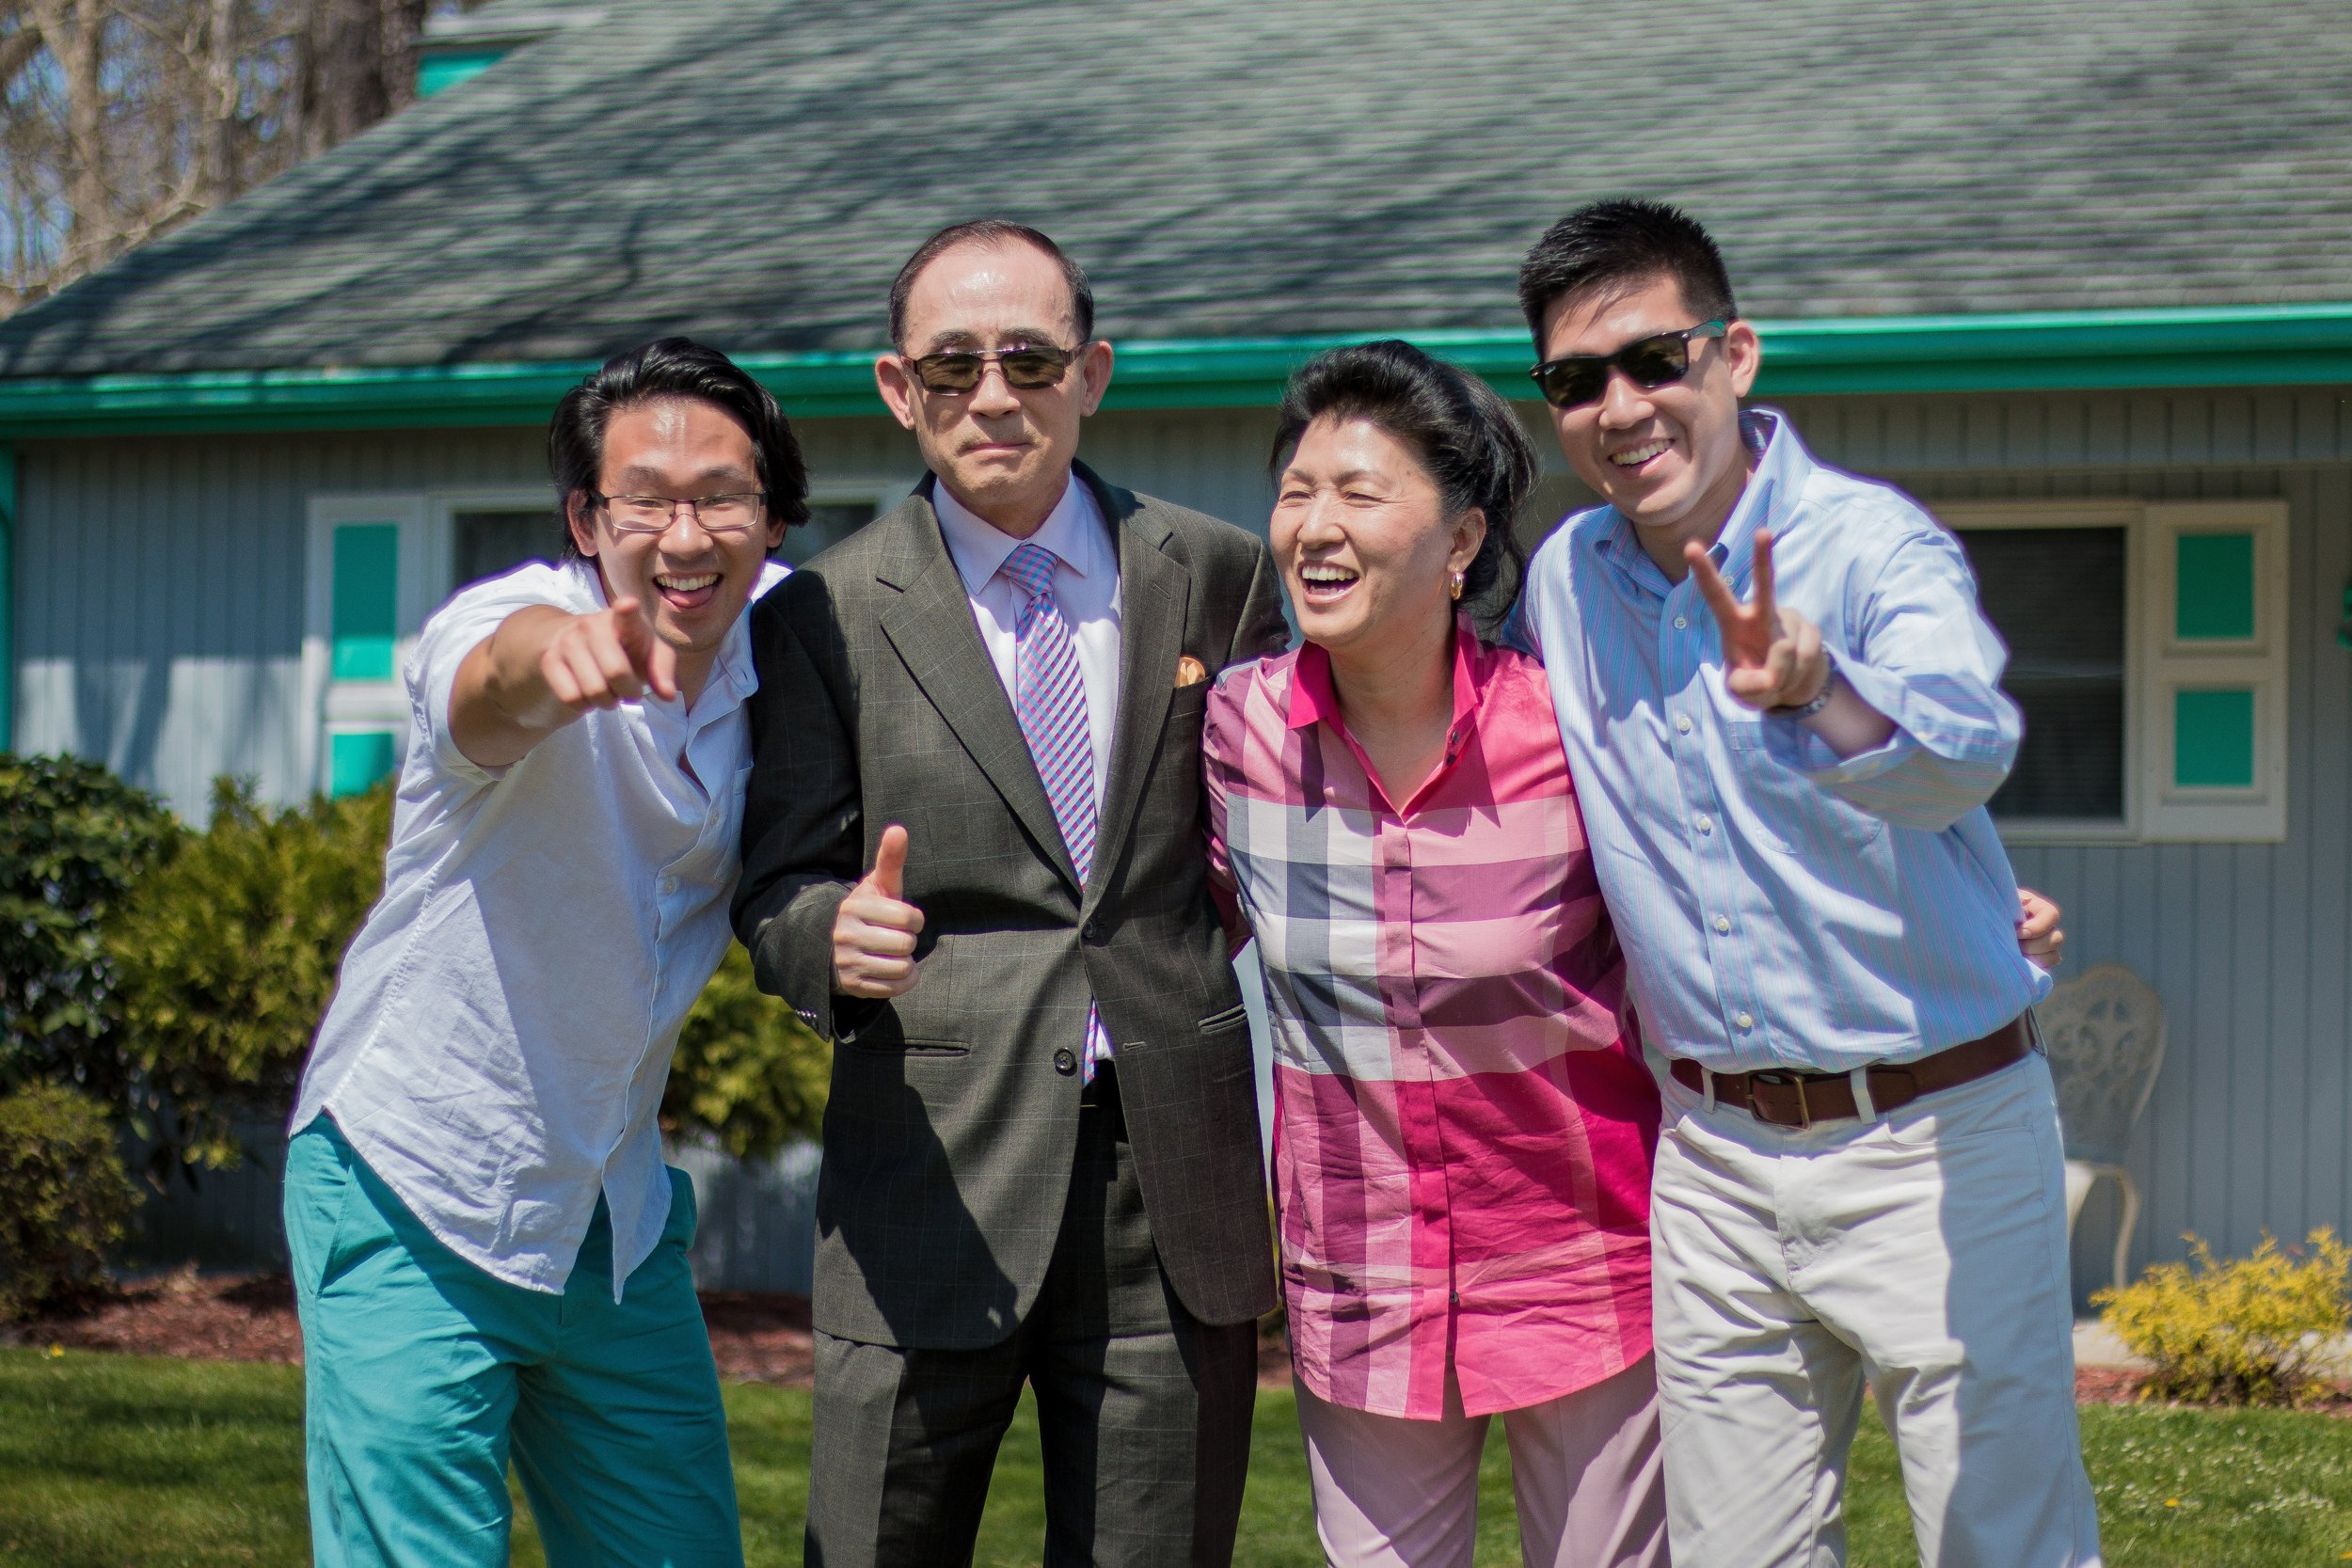 The Lee Family (Myself, Dad, Mom, Brother; April 2017)